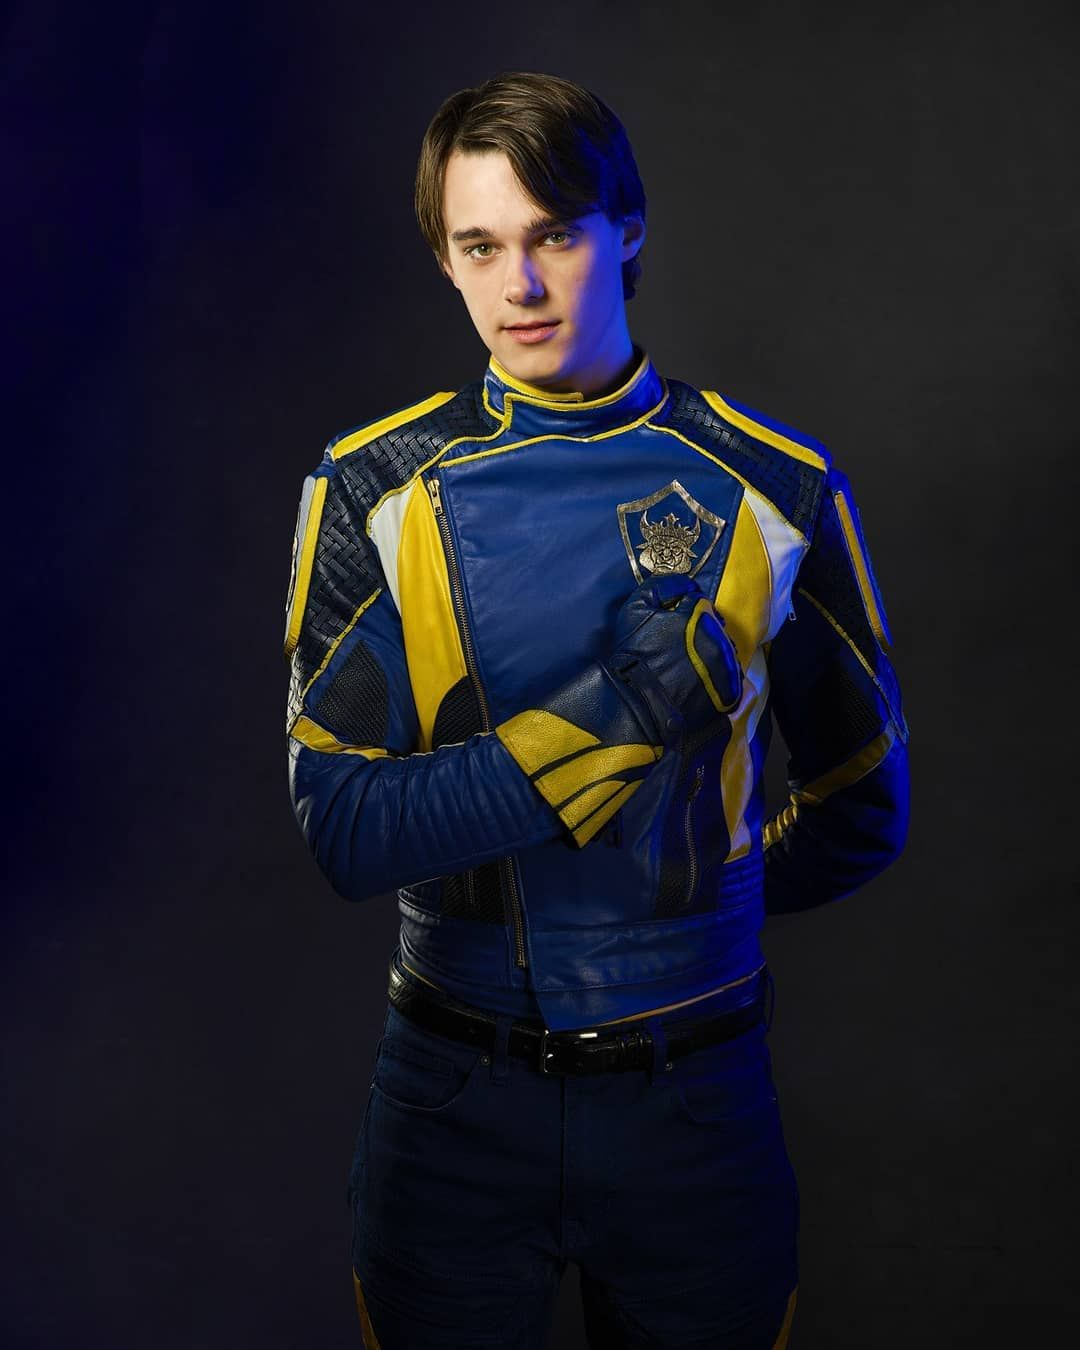 King Ben #descendants3 #disneydescendants3 #descendants3